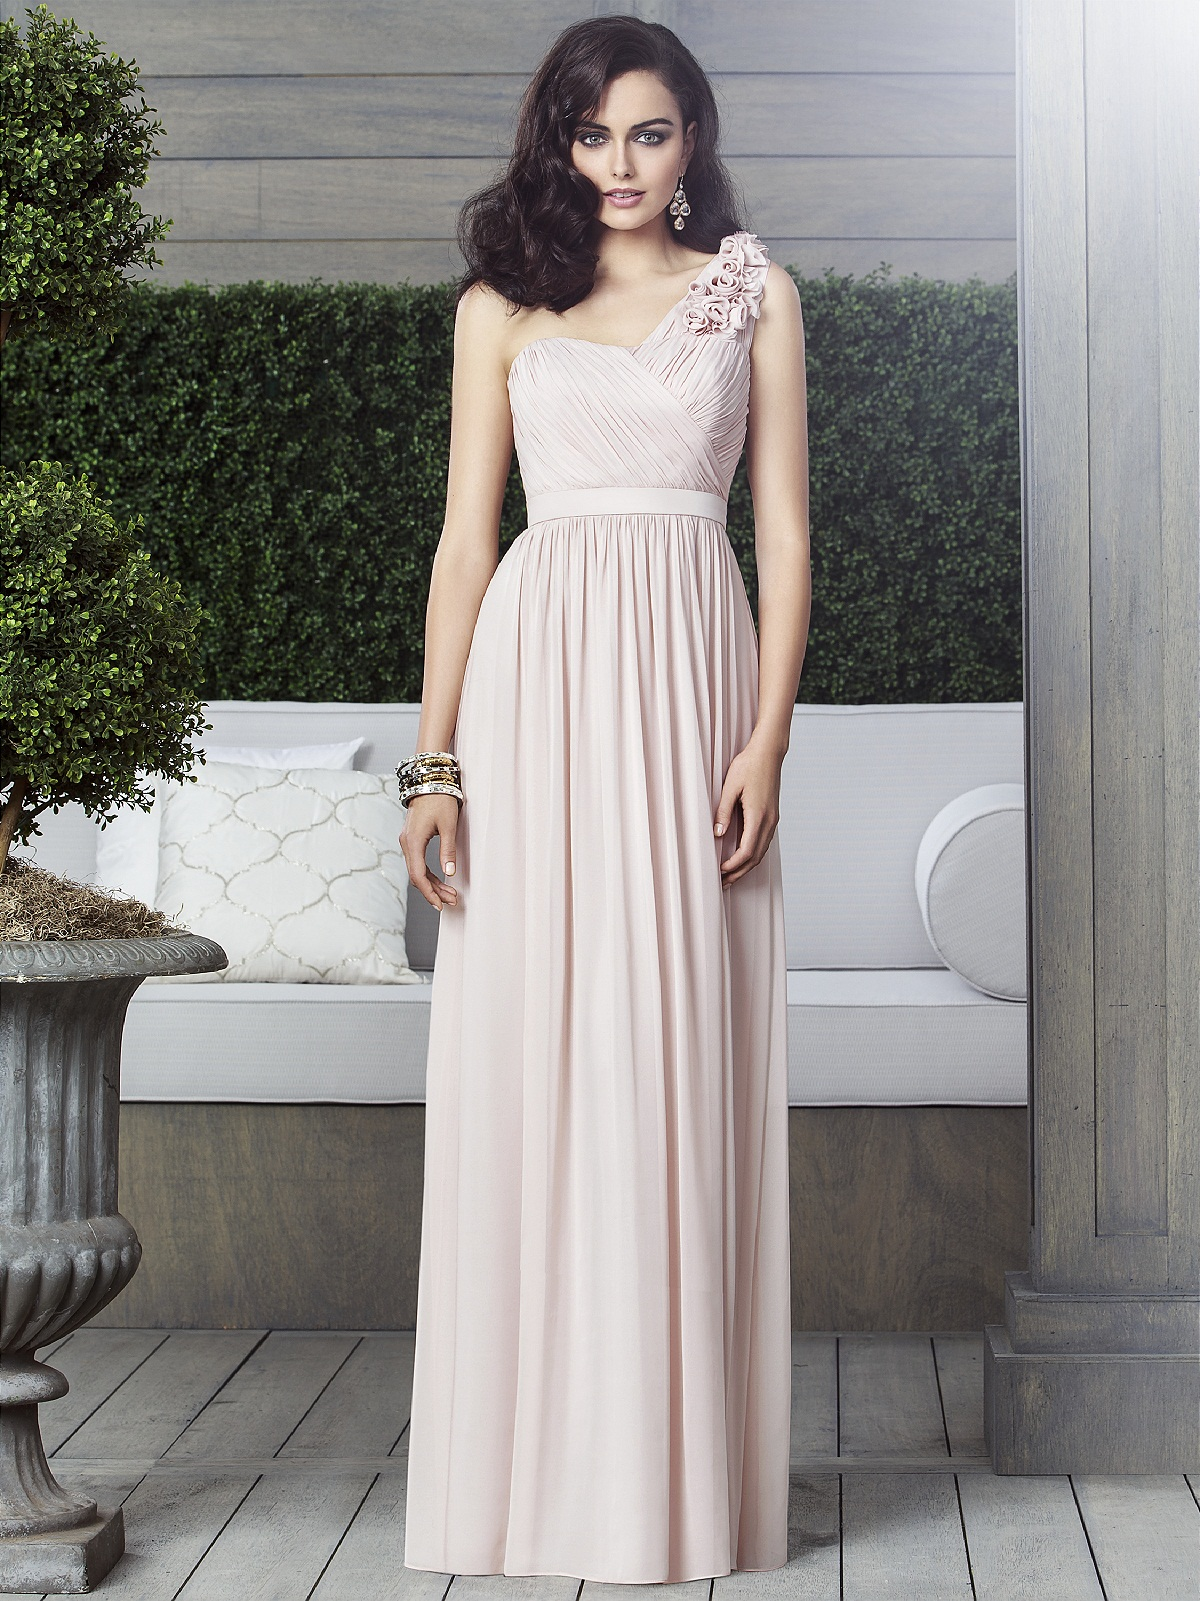 DESSY BRIDESMAID DRESSES-DESSY DRESSES 2909-D2909-THE DESSY GROUP ...